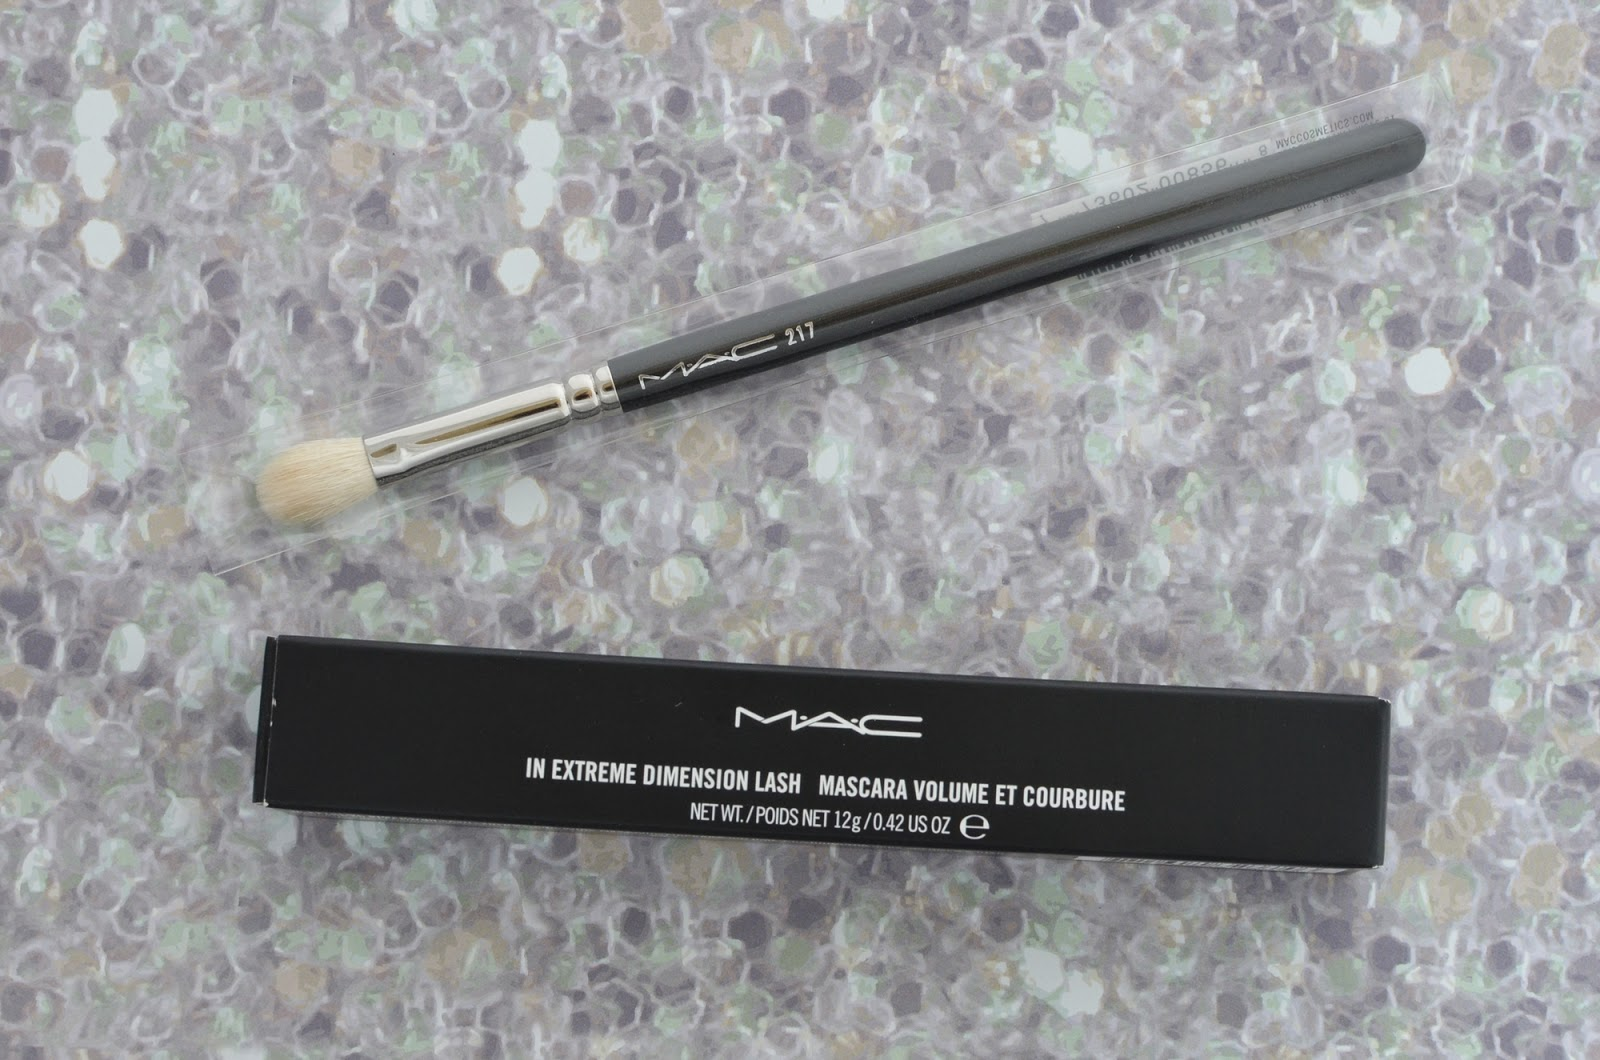 MAC haul 217 in extreme dimension lash mascara brush